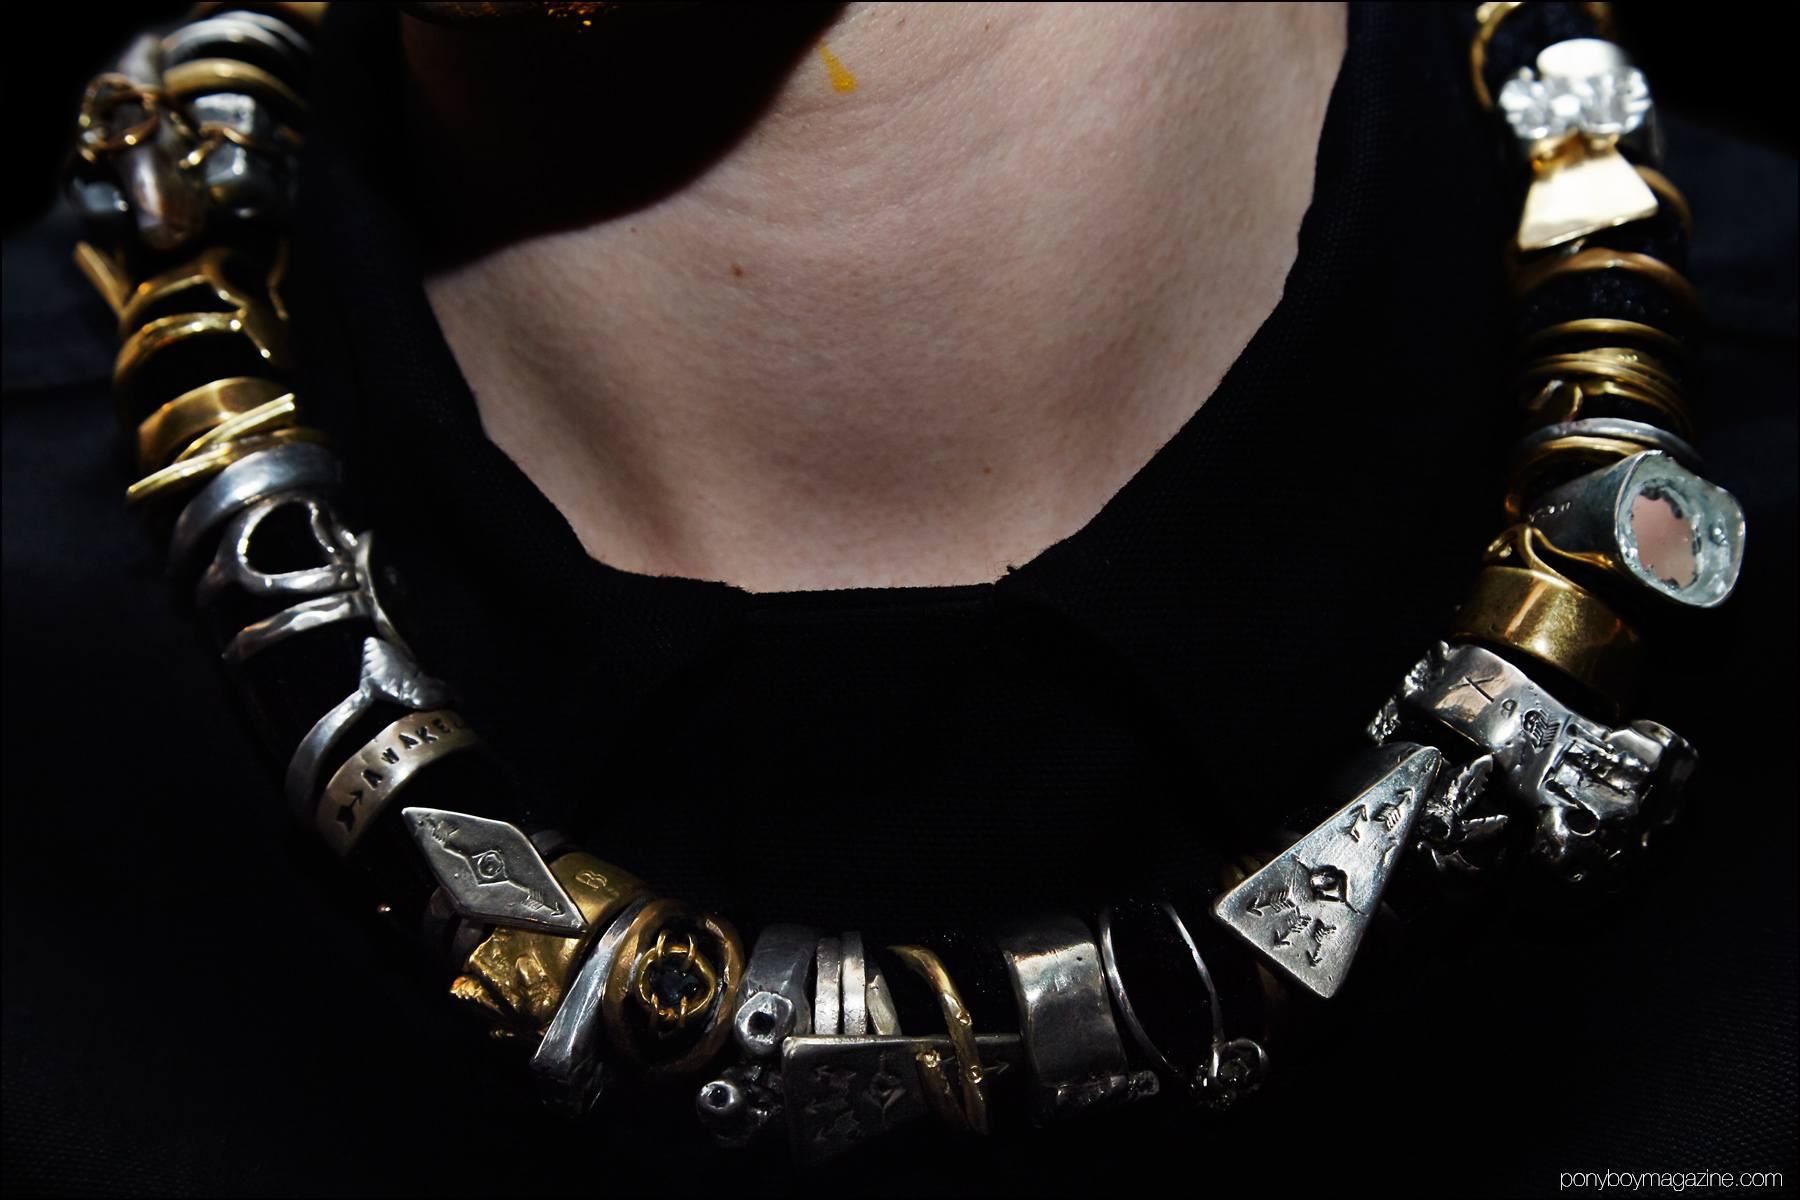 Detail shot of men's necklace, worn backstage at Siki Im + Den Im F/W16 menswear show. Photograph by Alexander Thompson for Ponyboy magazine NY.